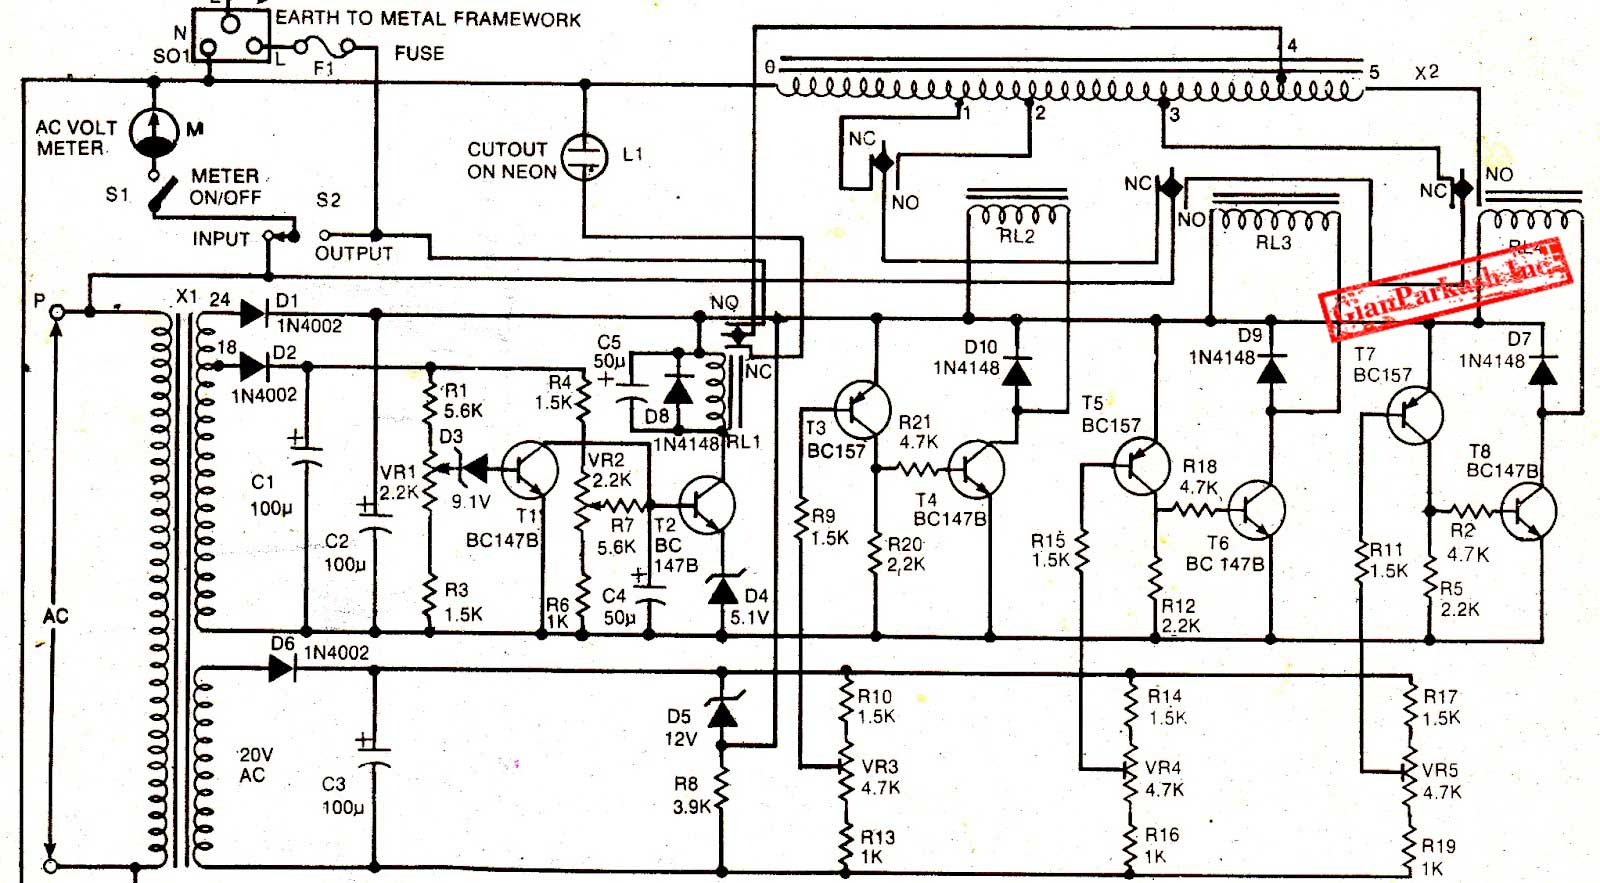 220v Ac Voltage Regulator Circuit Diagram Books Of Wiring Lm7805 Powersupplycircuit Seekiccom Mains Stabilizer Rh Electronictheory Blogspot Com